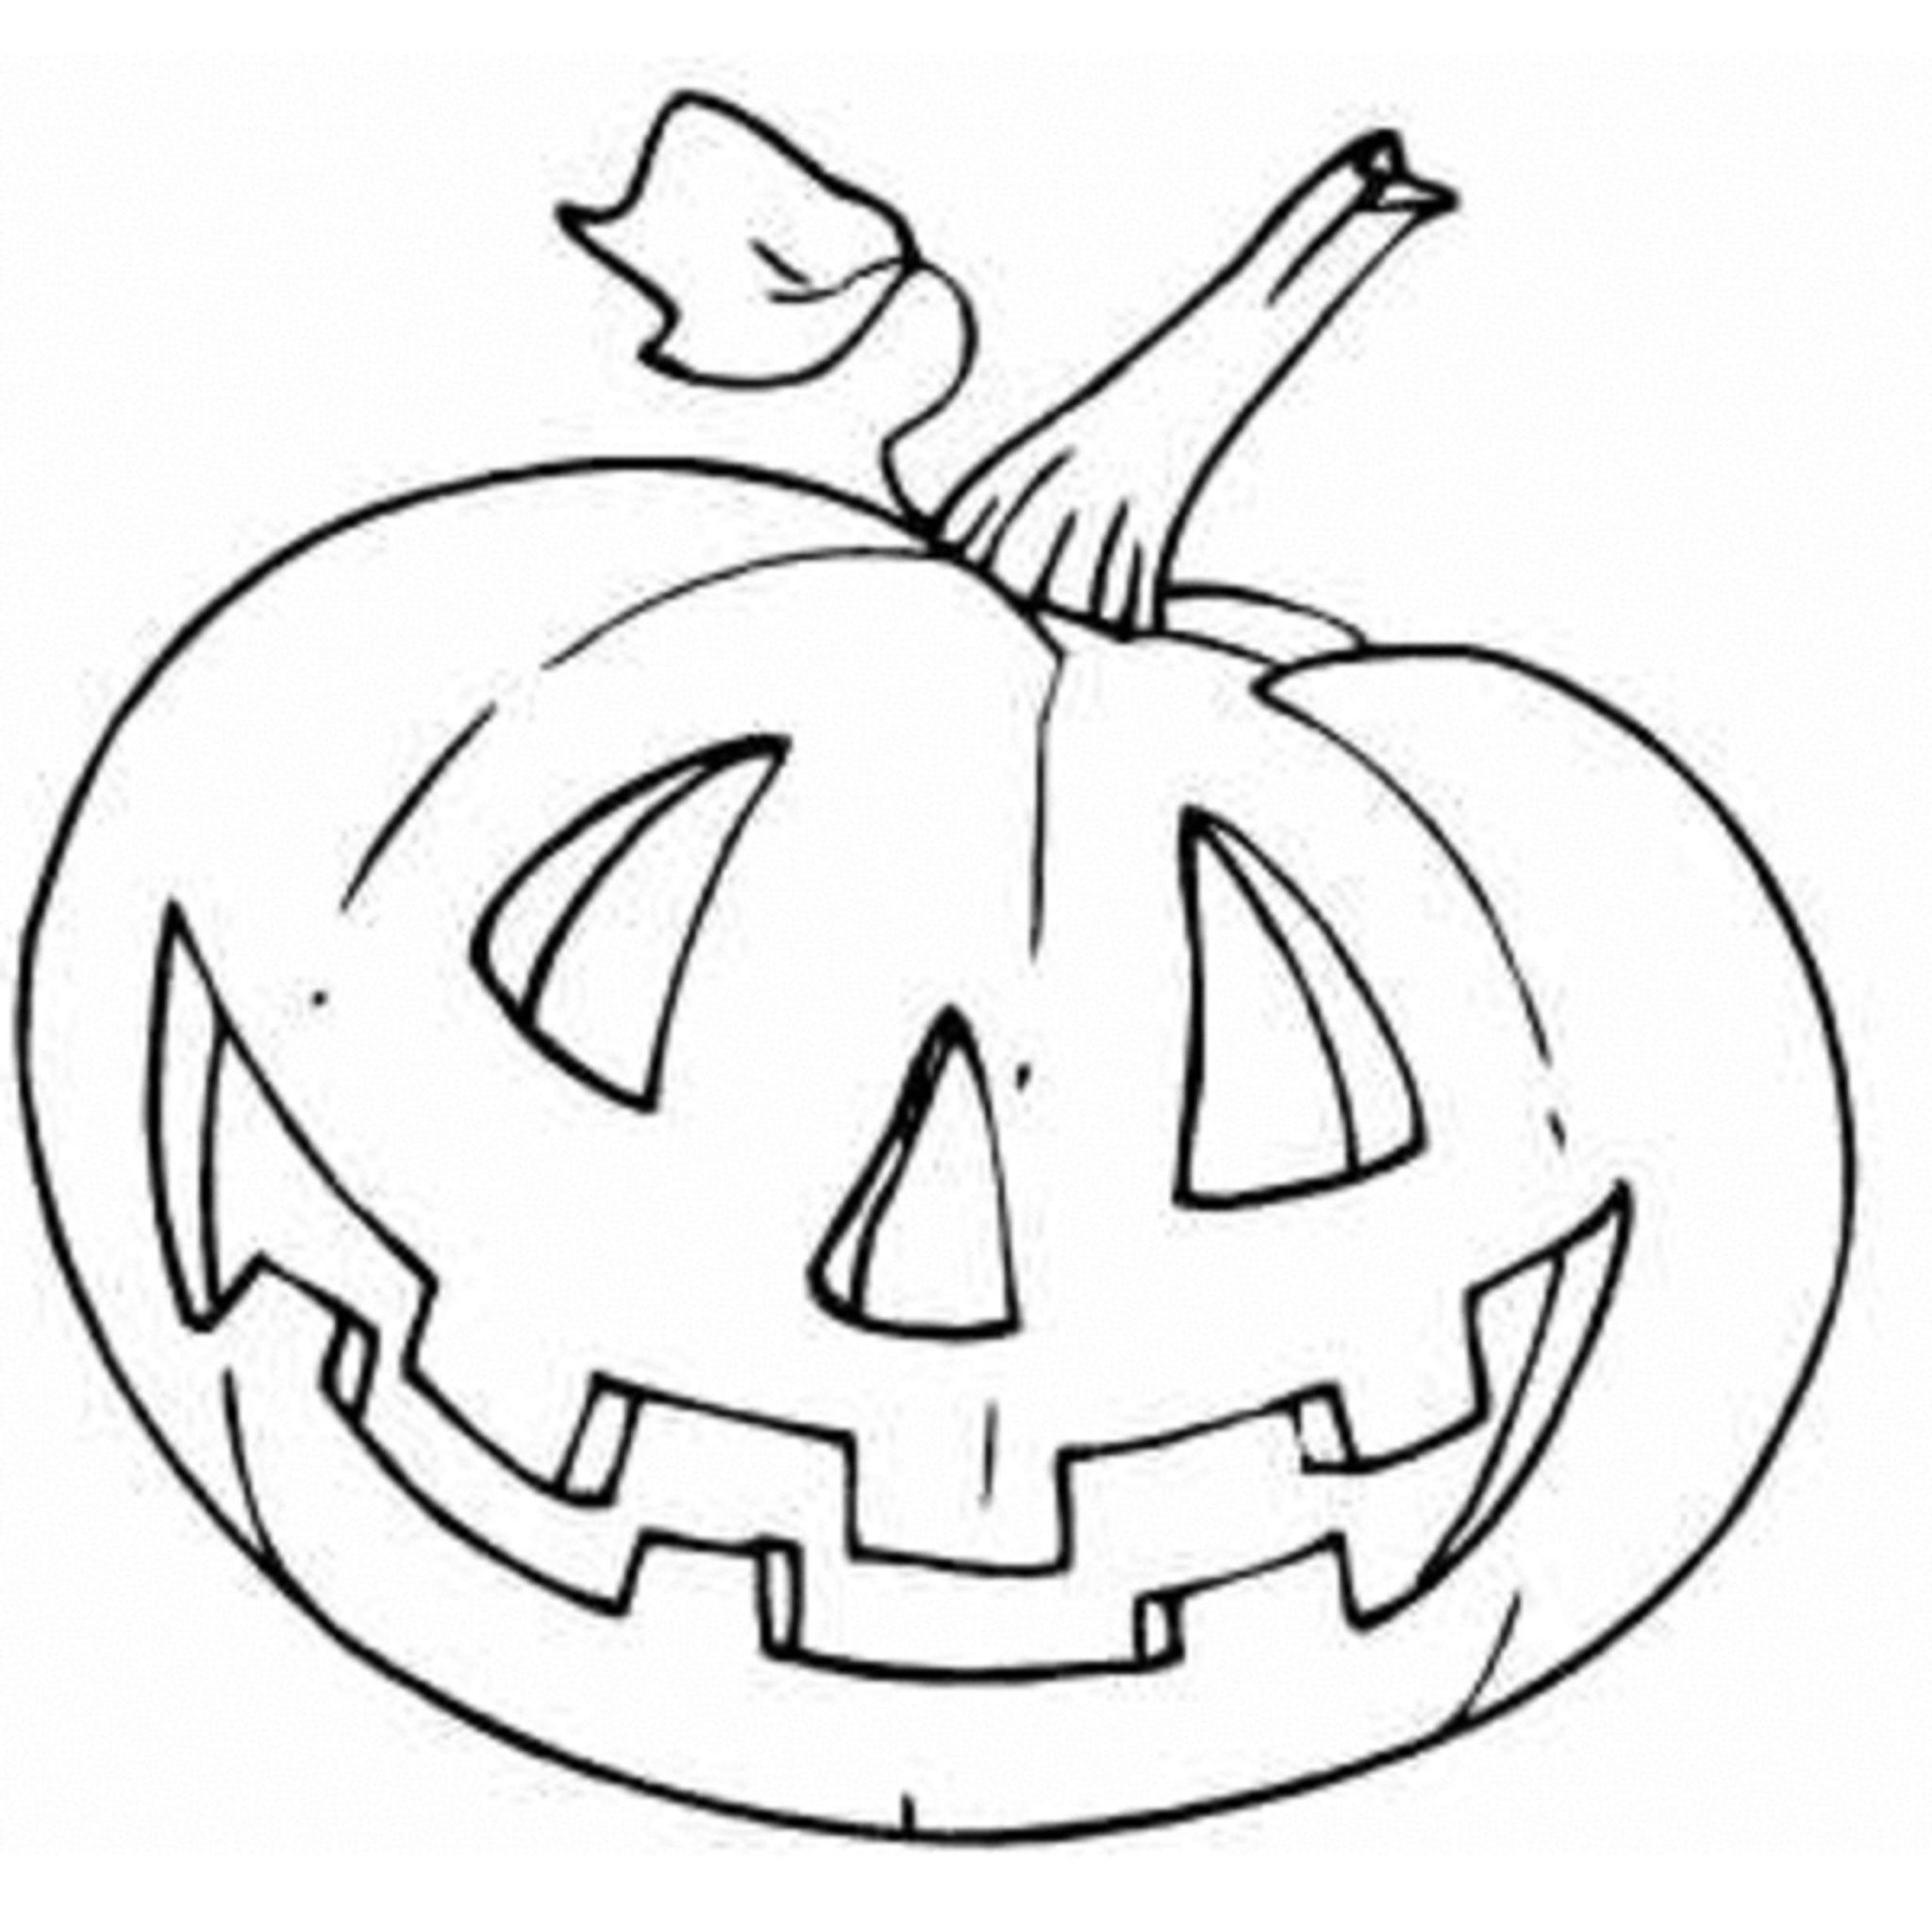 coloring pages for 3rd graders 3rd grade text and girl coloring page wecoloringpagecom graders 3rd for coloring pages